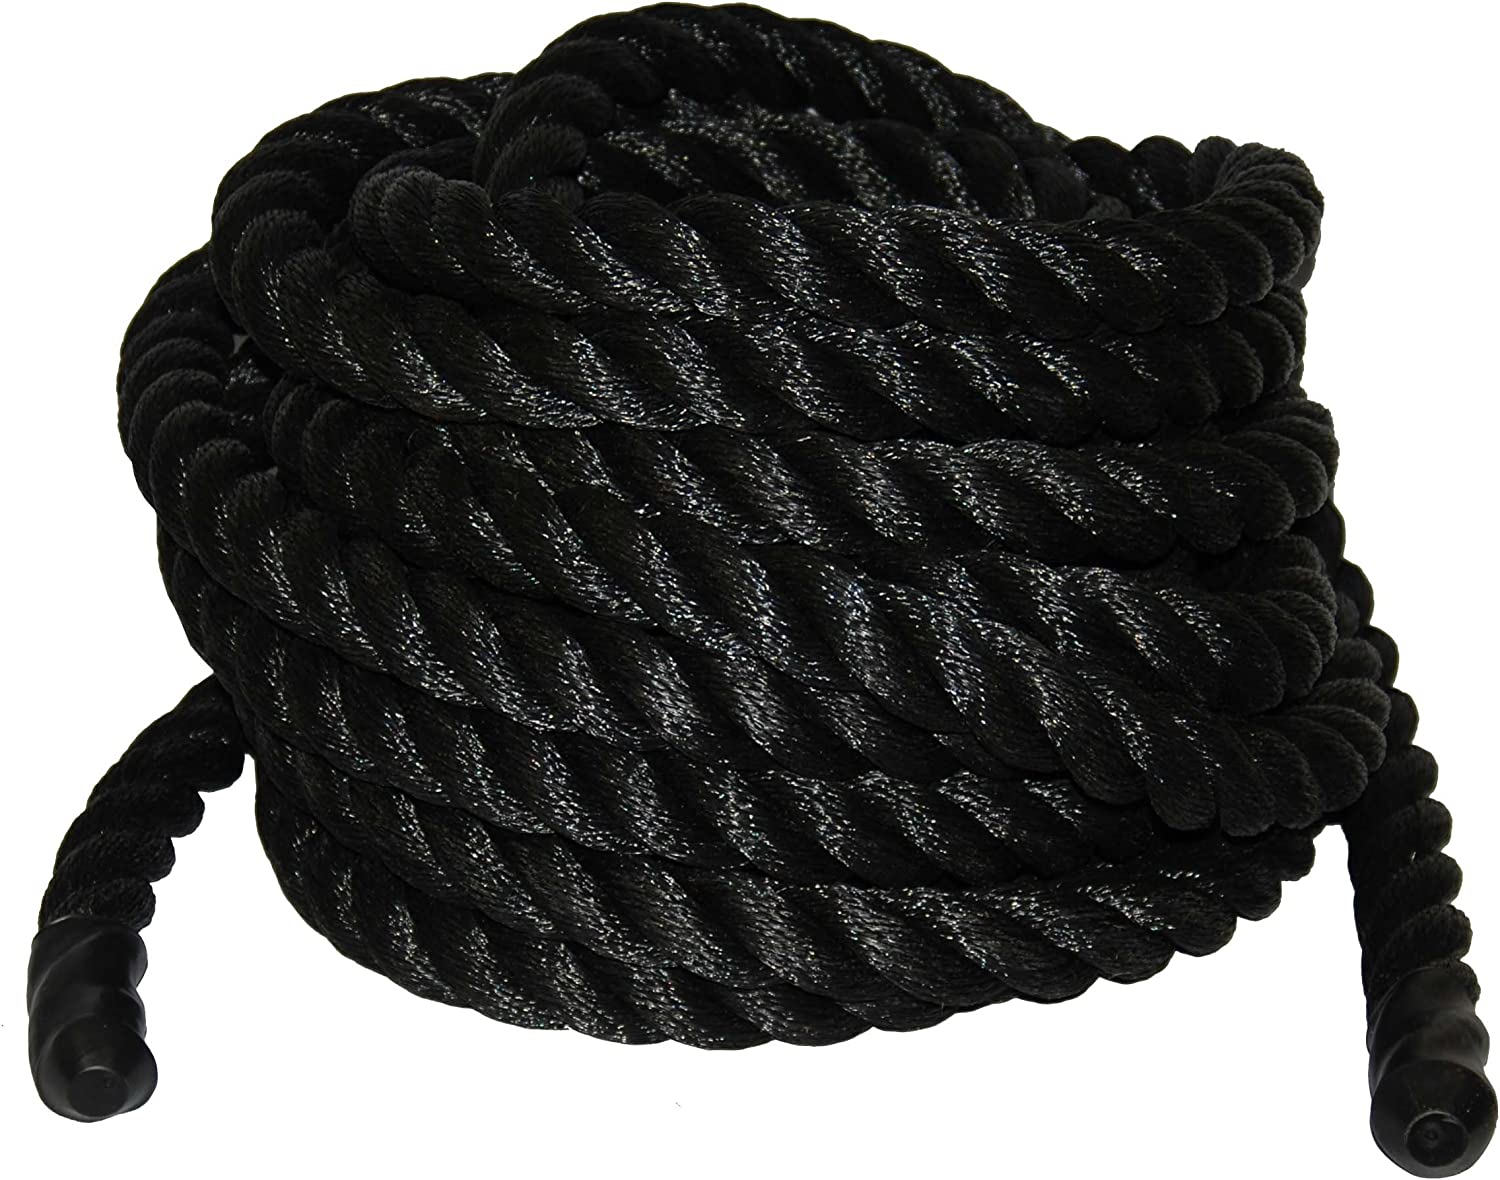 T.W Evans Cordage 23-210 1//4-Inch by 100-Feet Twisted Sisal Rope